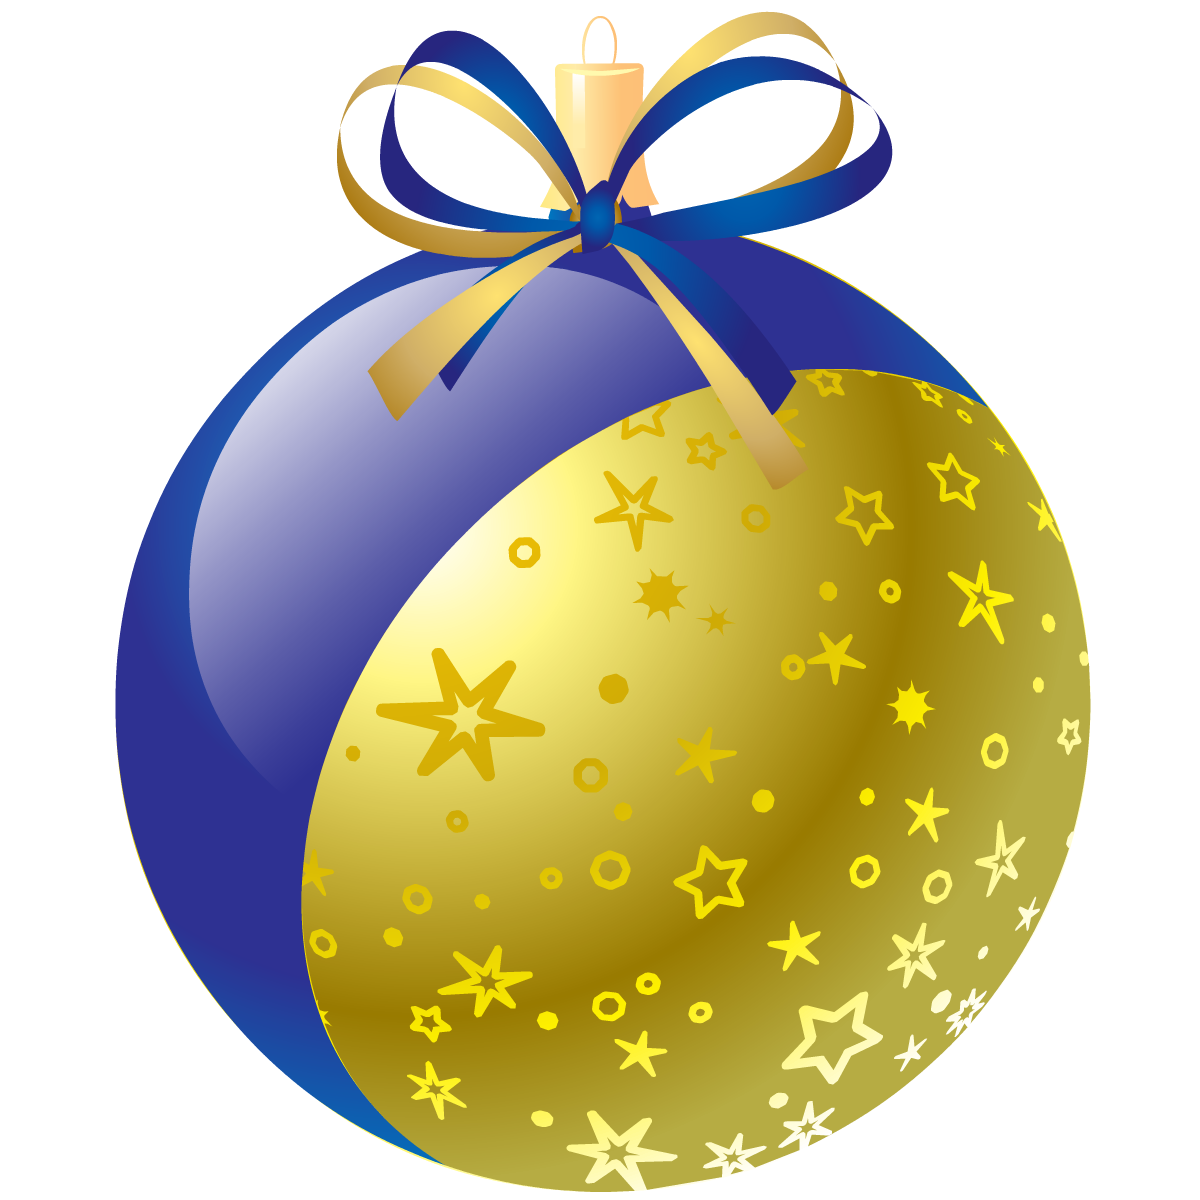 Blue and gold Christmas ornament with stars.